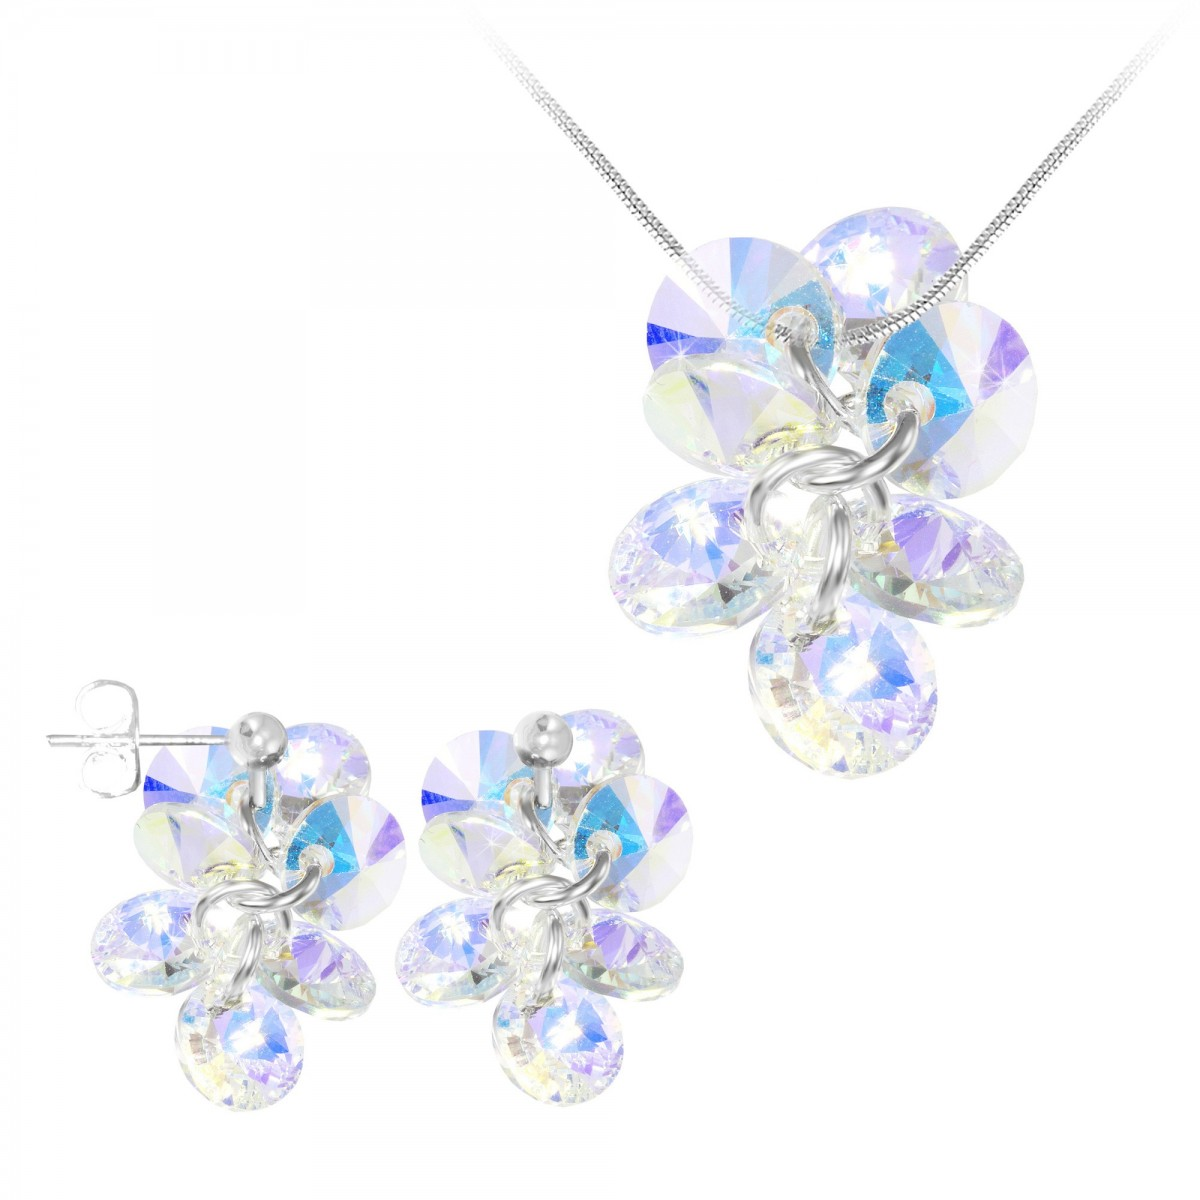 Parure collier et boucles d'oreilles mode So Charm made with Crystal from Swarovski irisé